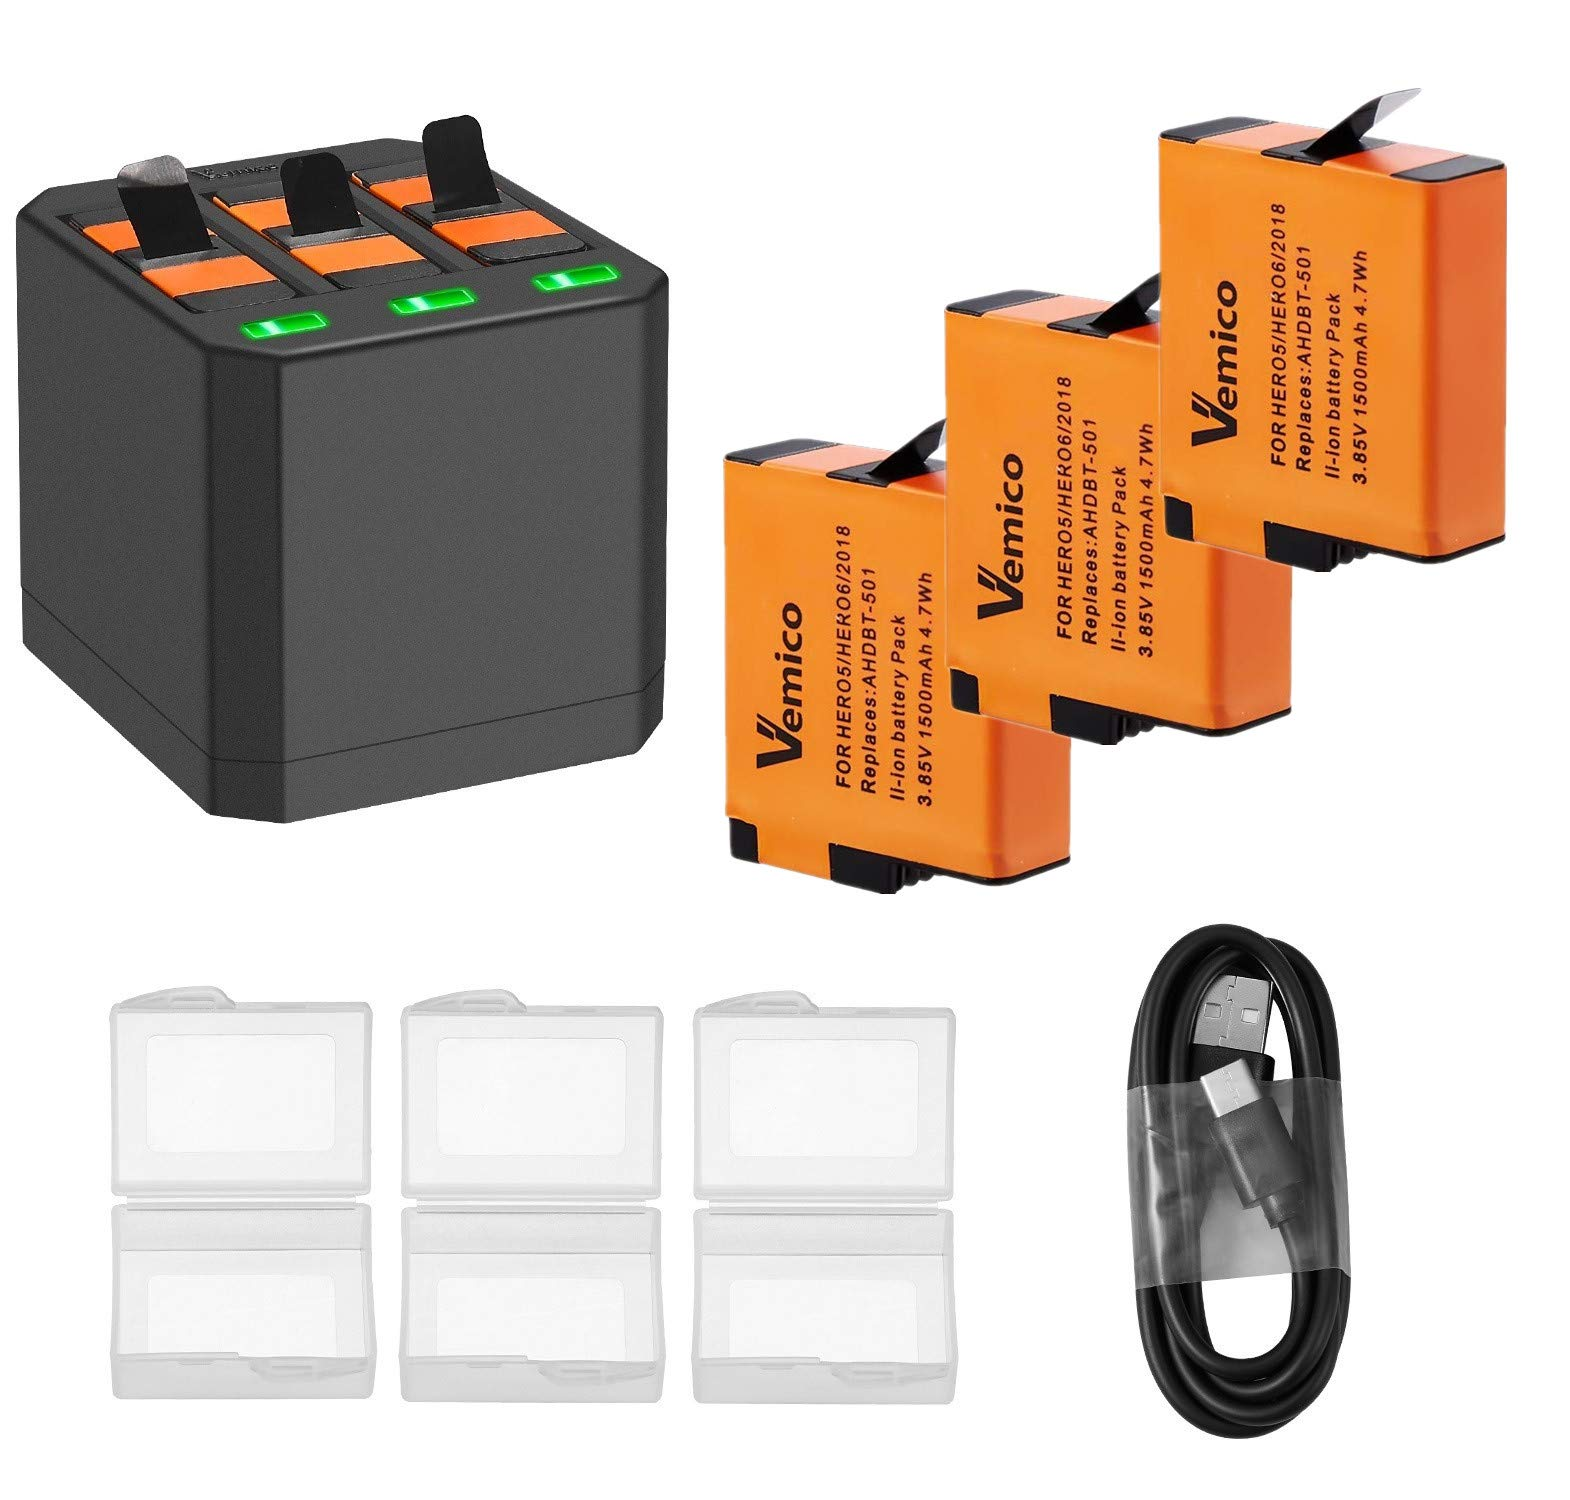 Vemico GoPro Battery Hero 8/7/6 1500mah Replacement Batteries (3 Pack) and 3-Channel LED Type C USB Charger for GoPro Hero 8 Black,Hero 7 Black,Hero 6,Hero 5,AHDBT-501(Fully Compatible with Original) by Vemico